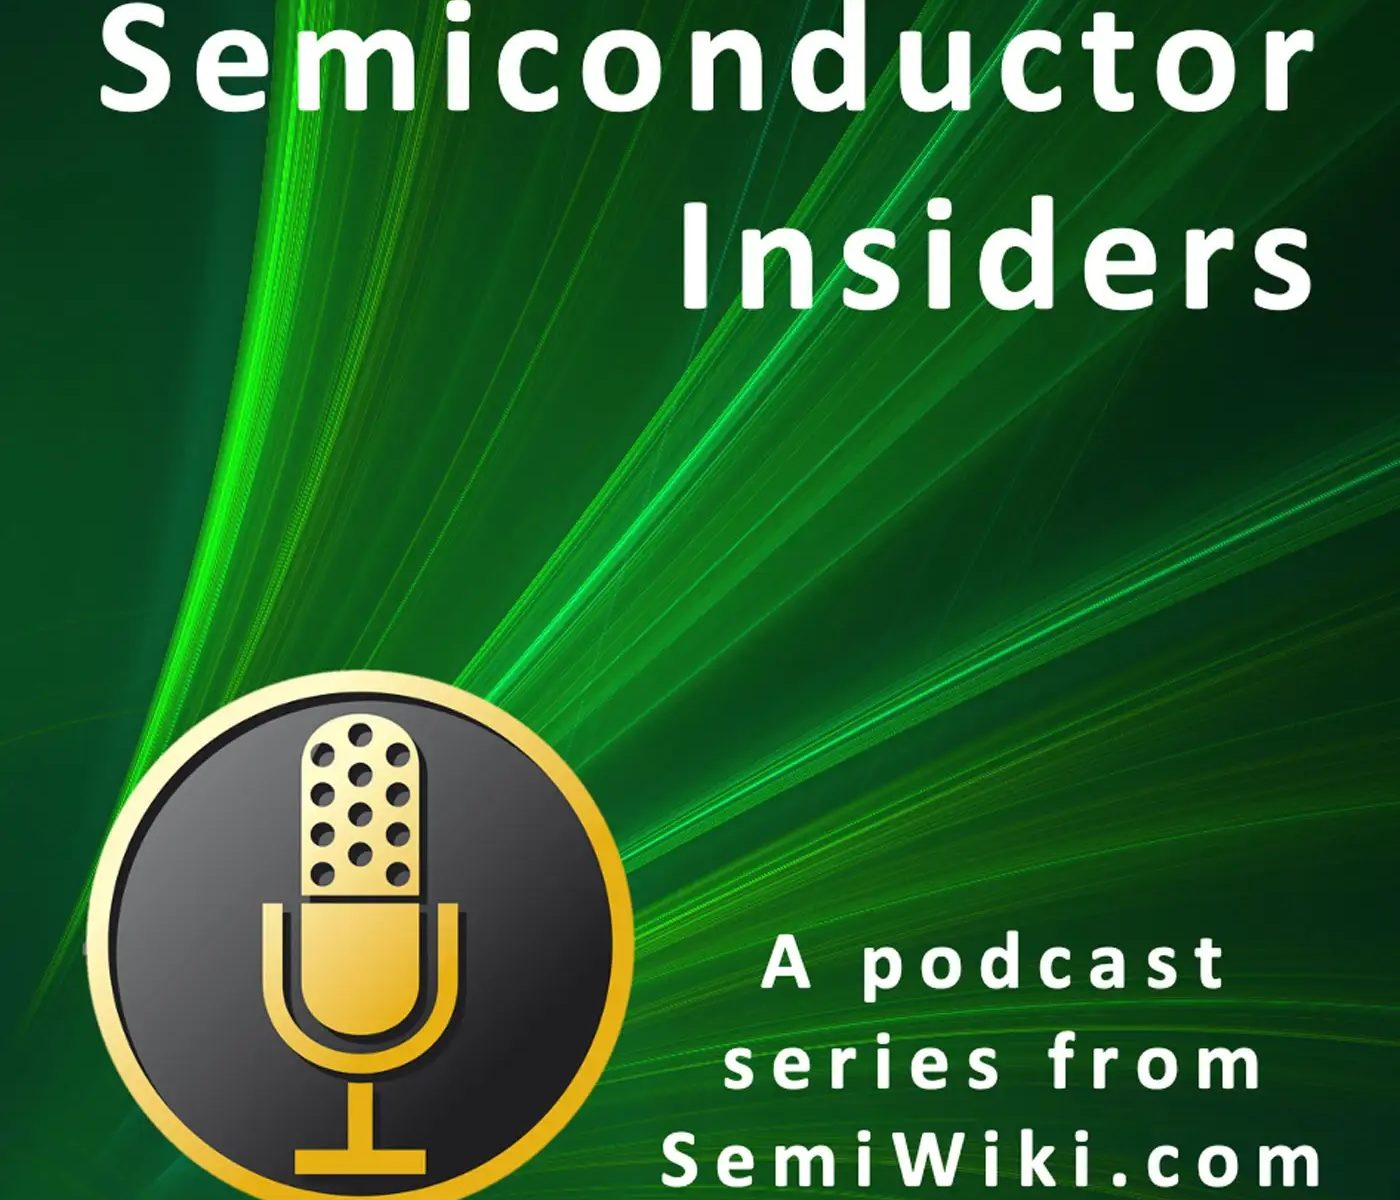 Semiconductor Insiders Podcast Icon 3